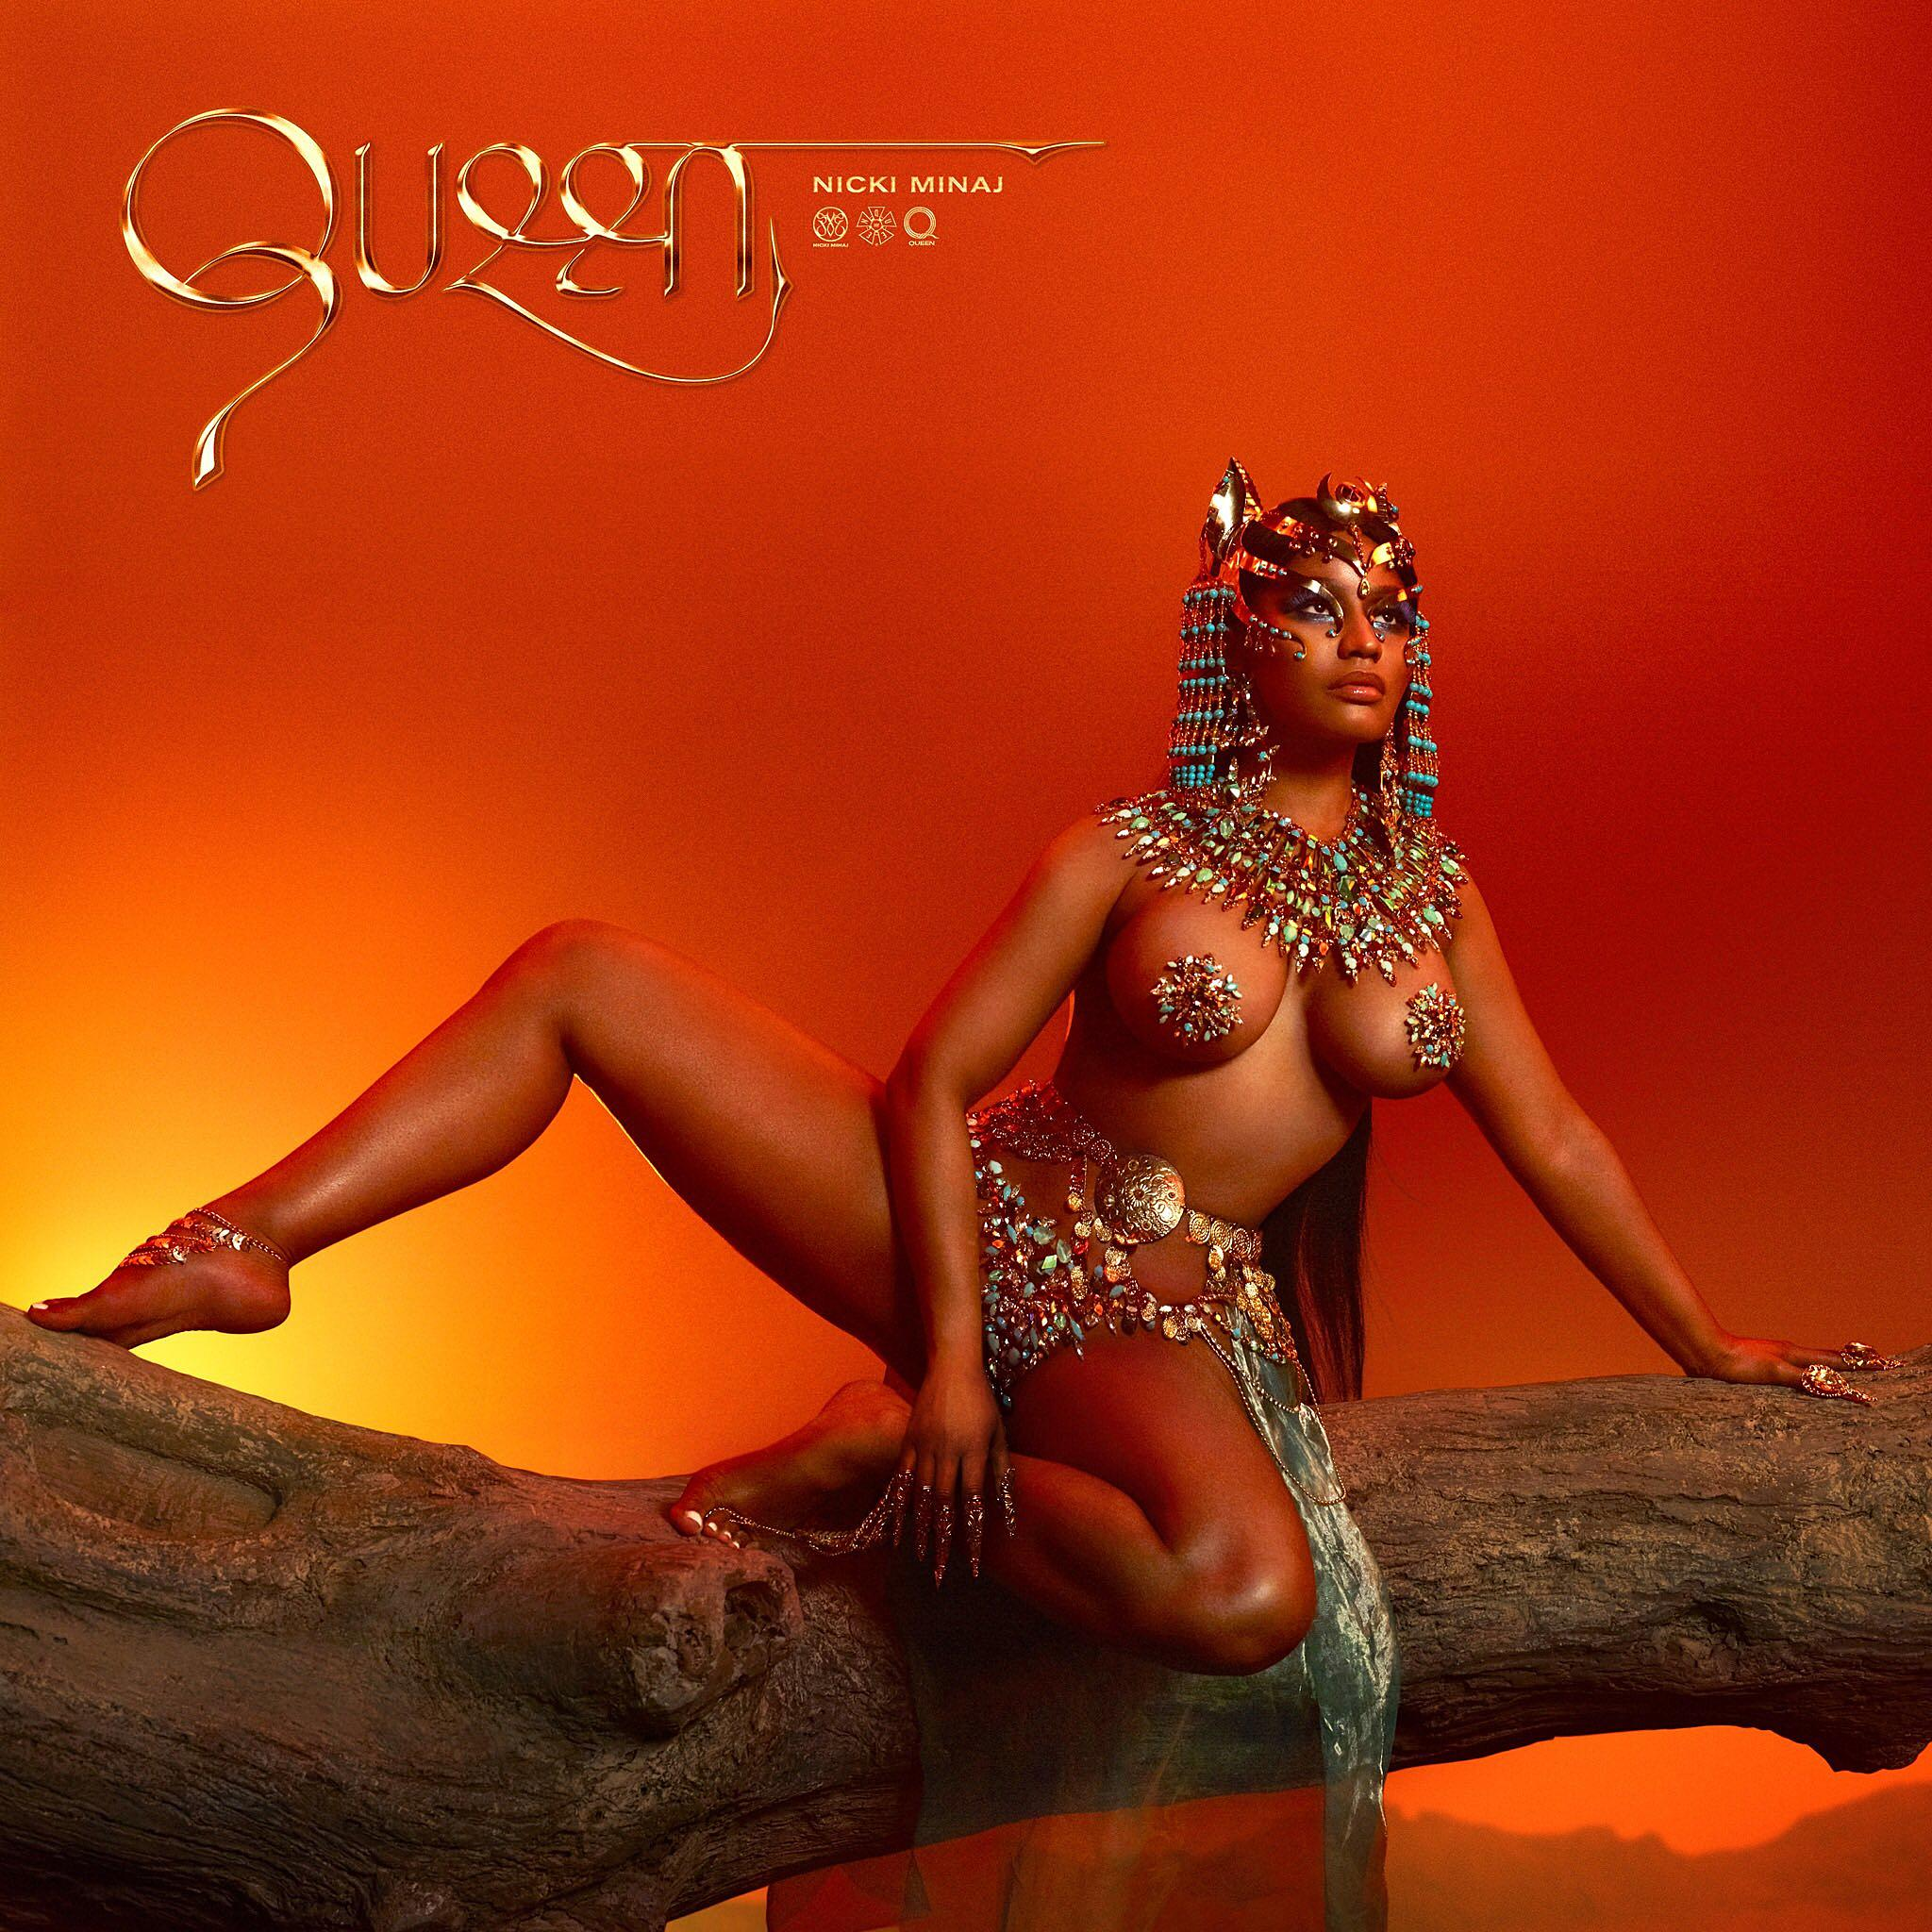 Nicki minaj - Queen album cover